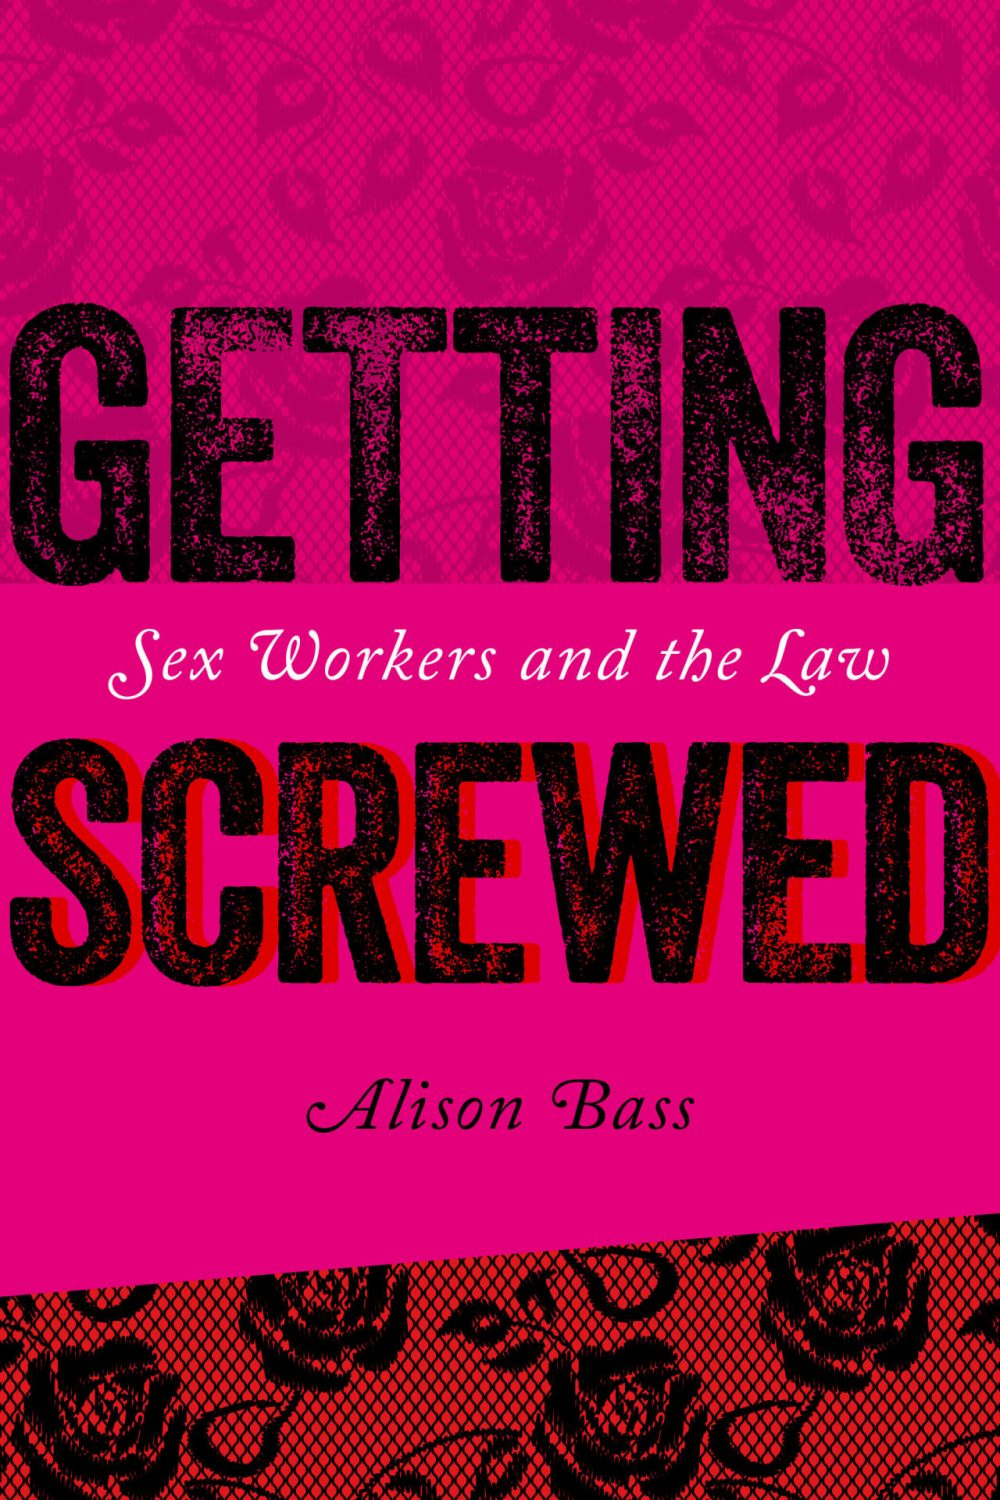 """Getting Screwed: Sex Workers and the Law"" by Alison Bass. (Courtesy of Alison Bass)"